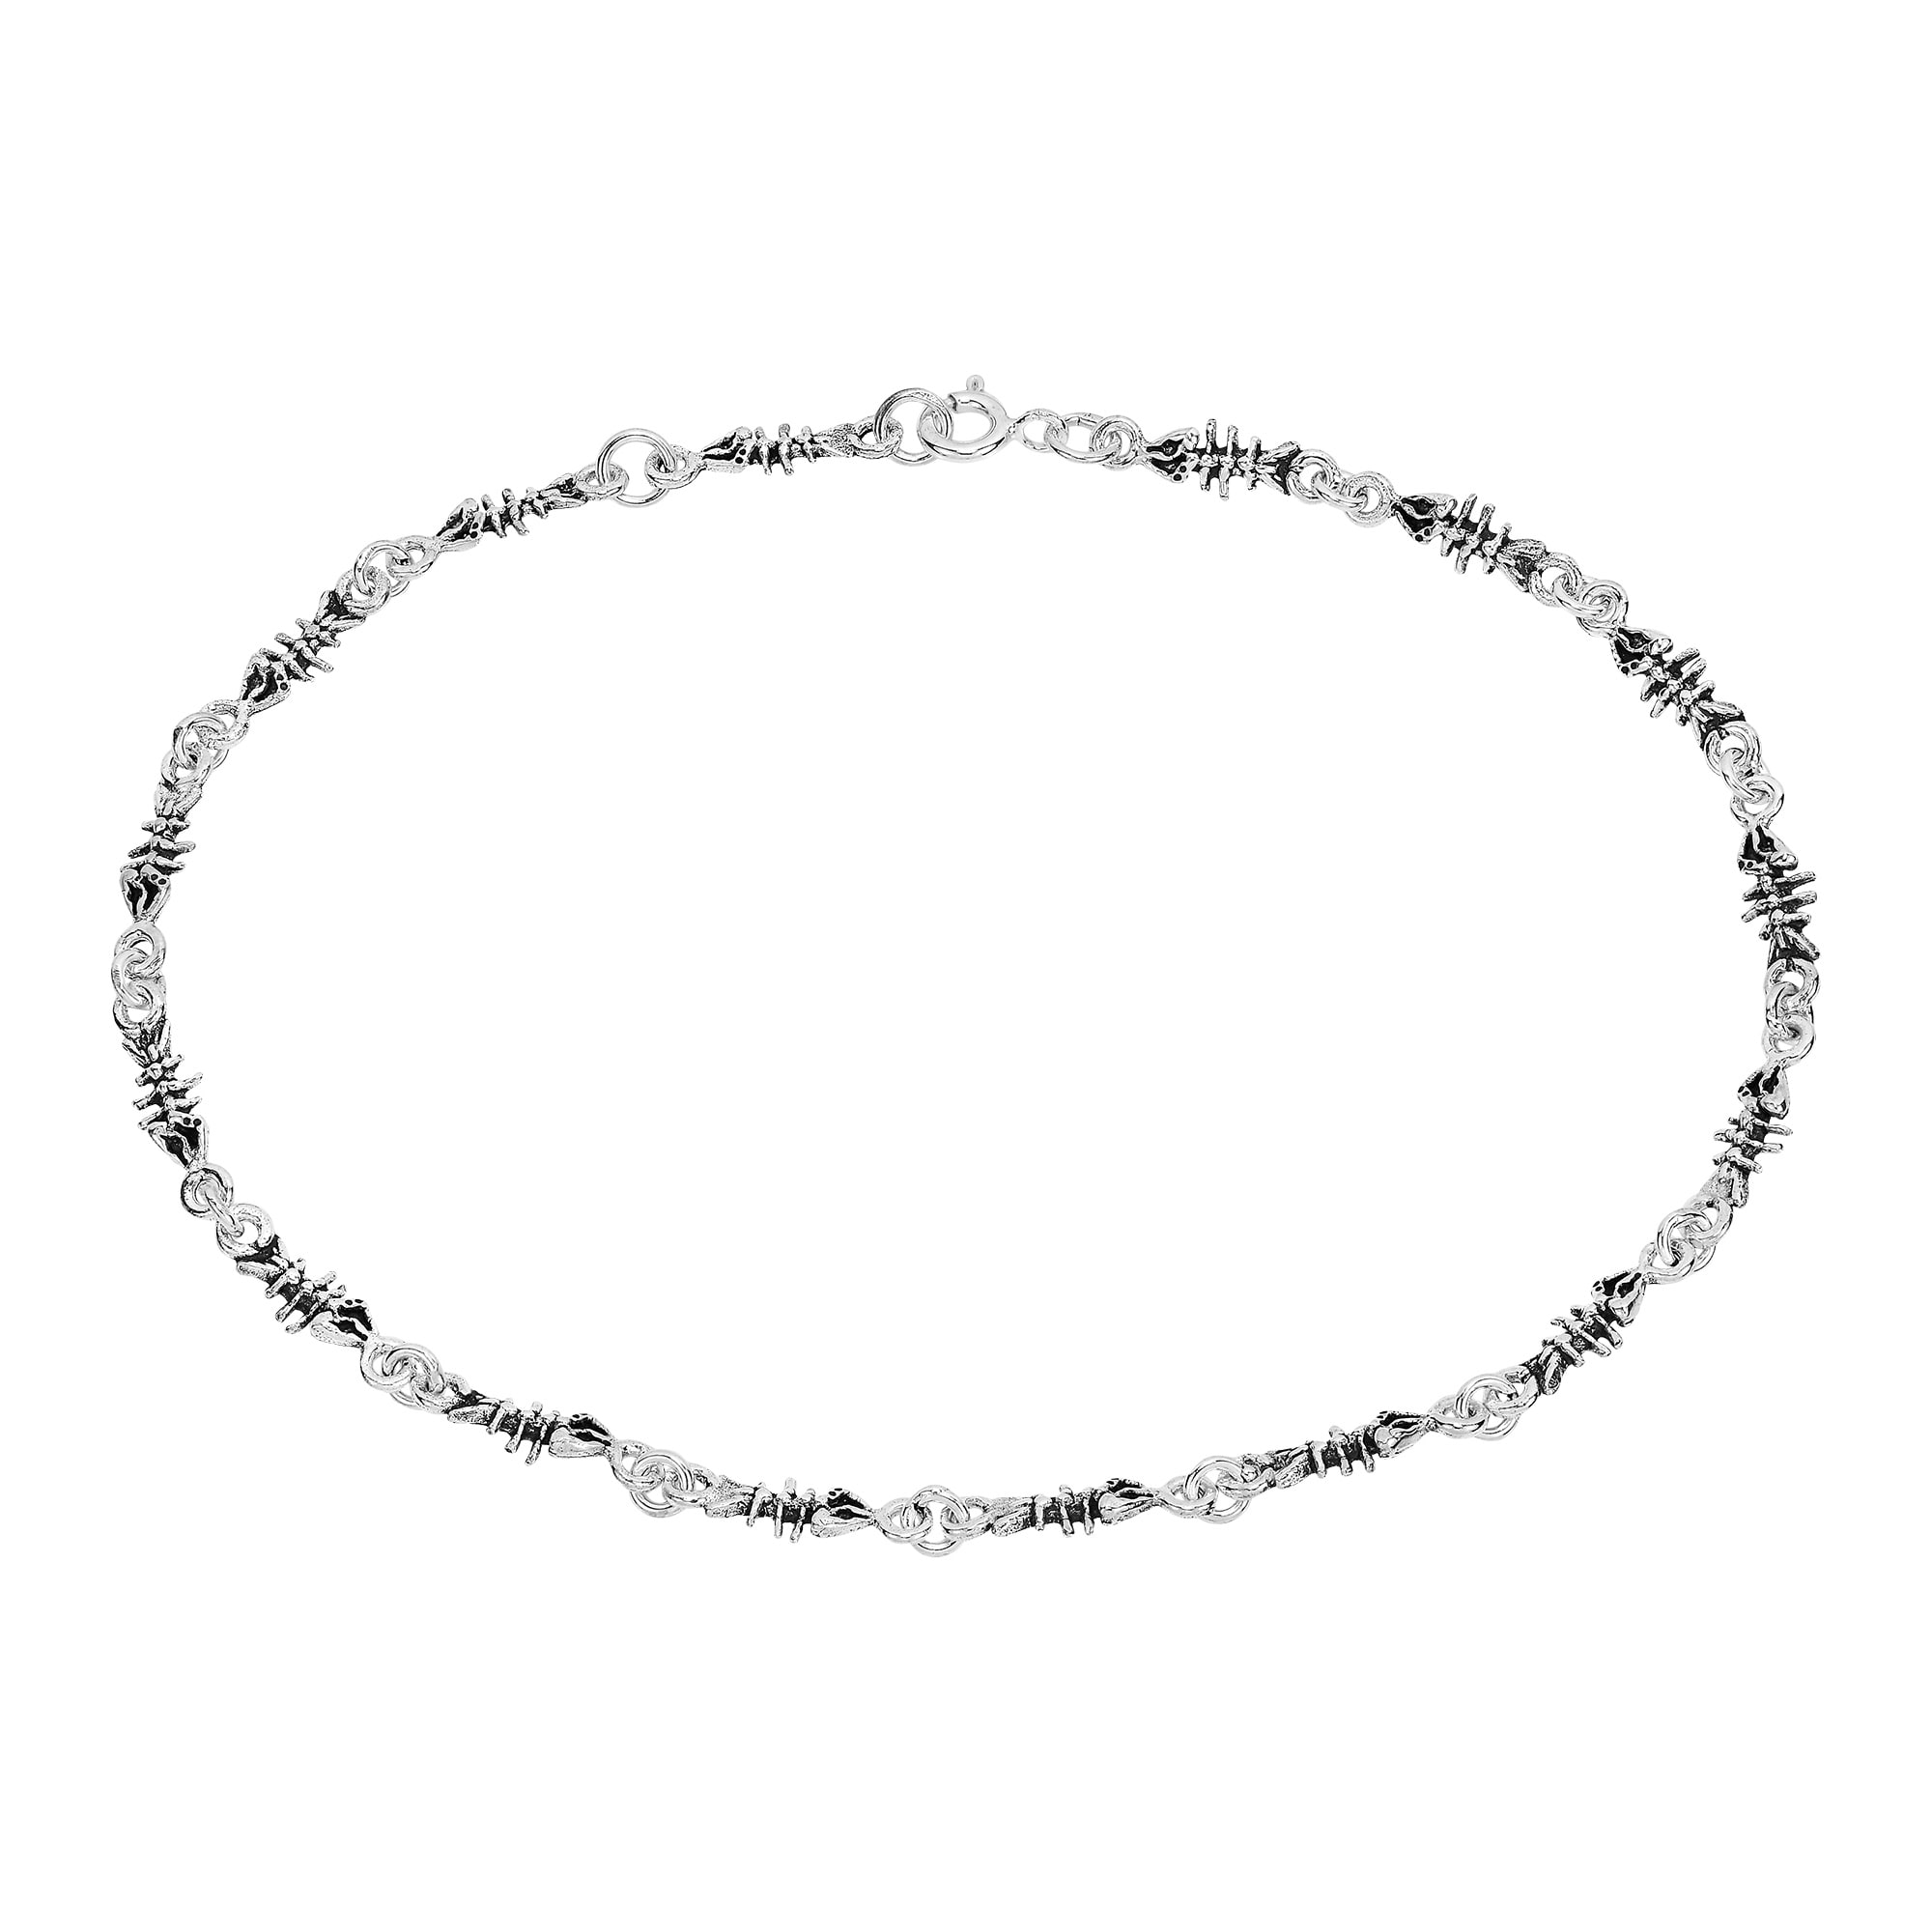 for n accessories kl anklet urban fashion jewelry to ladies bahana buy malaysia in women product where oxidised anklets rathi silvertone online indie girls